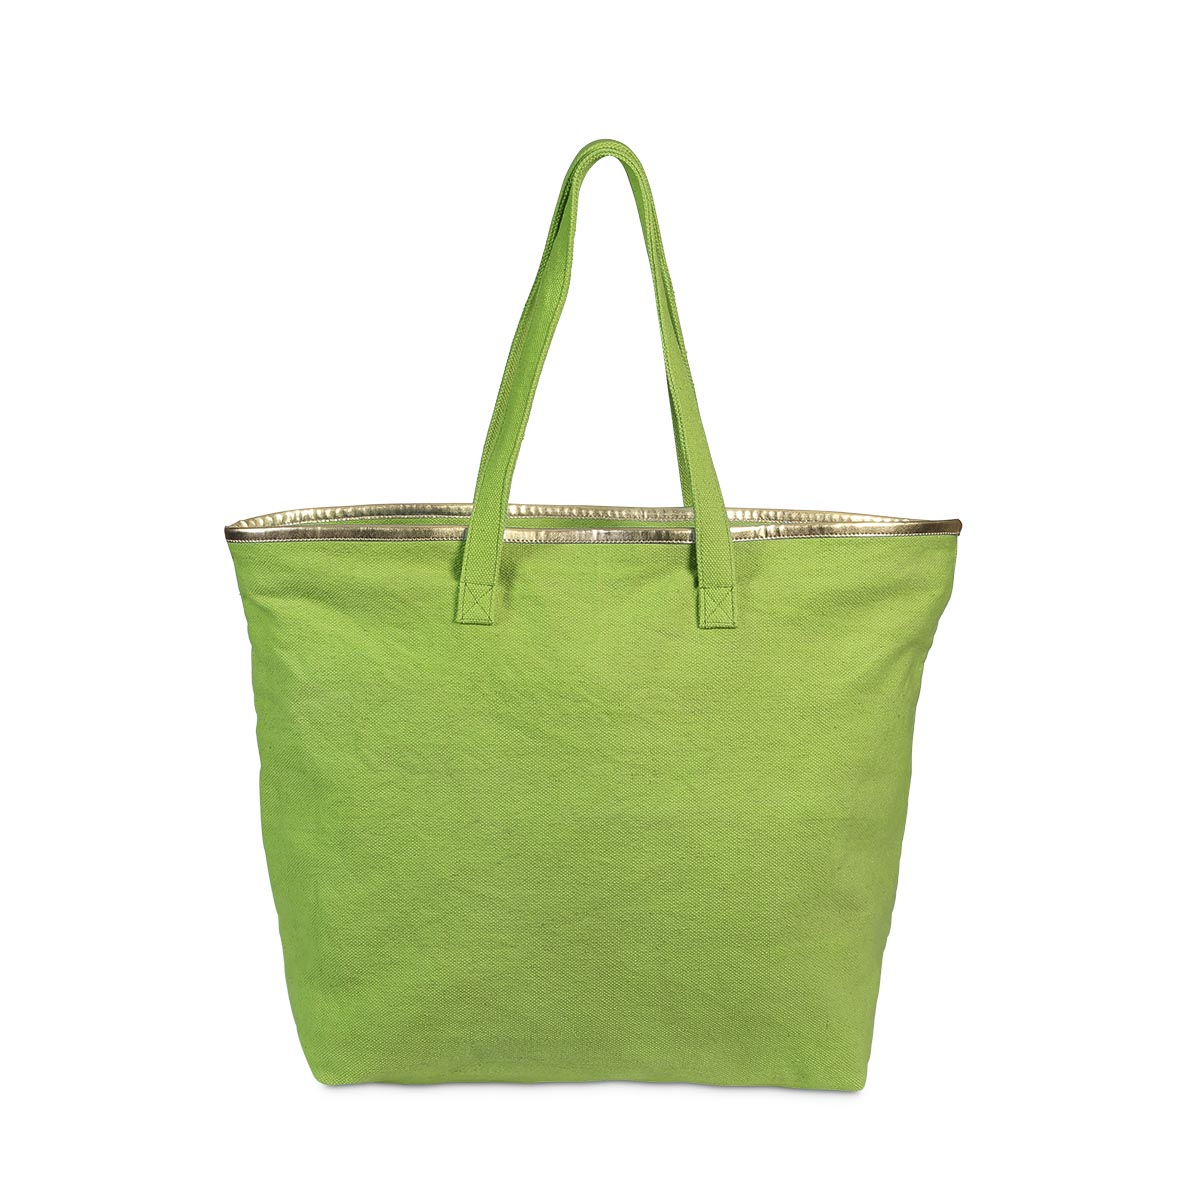 total tote green, gold trim